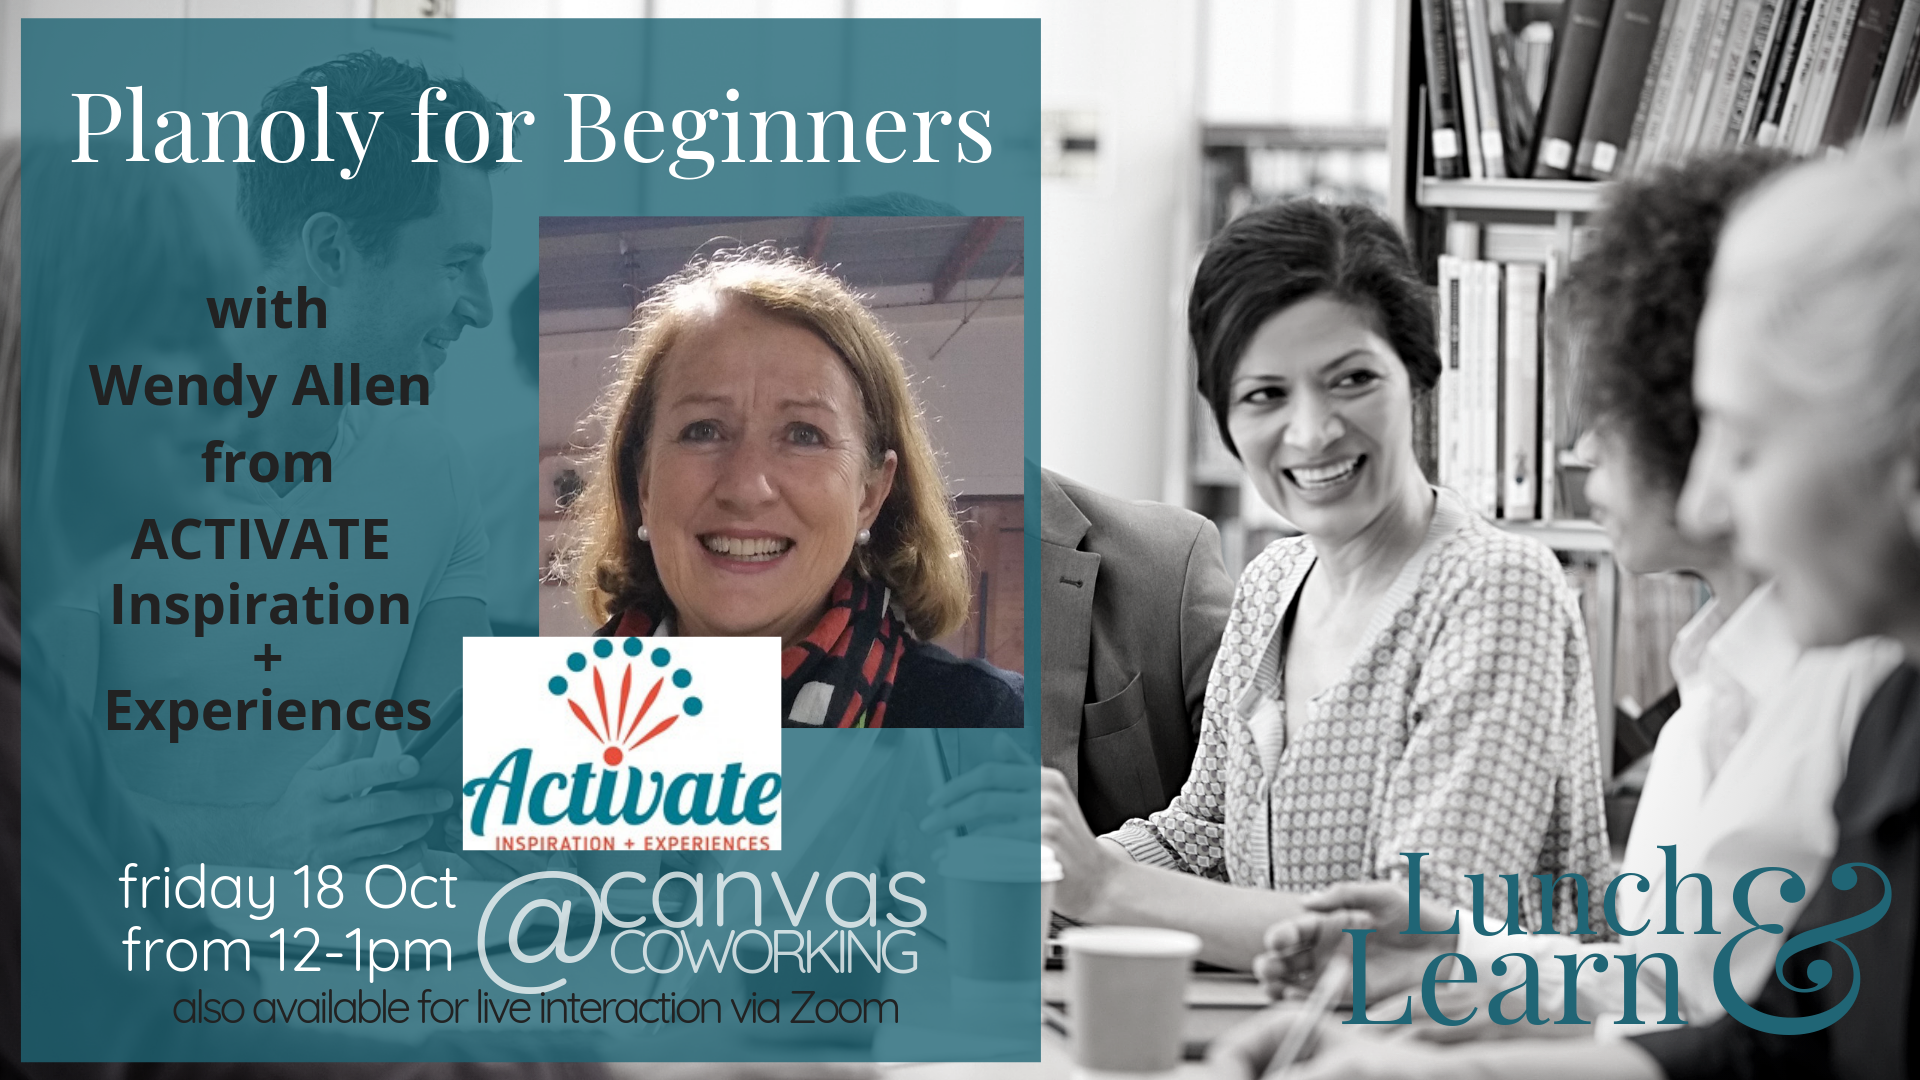 Planoly for Beginners with Wendy Allen for Lunch and Learn at Canvas Coworking 18th October 2019